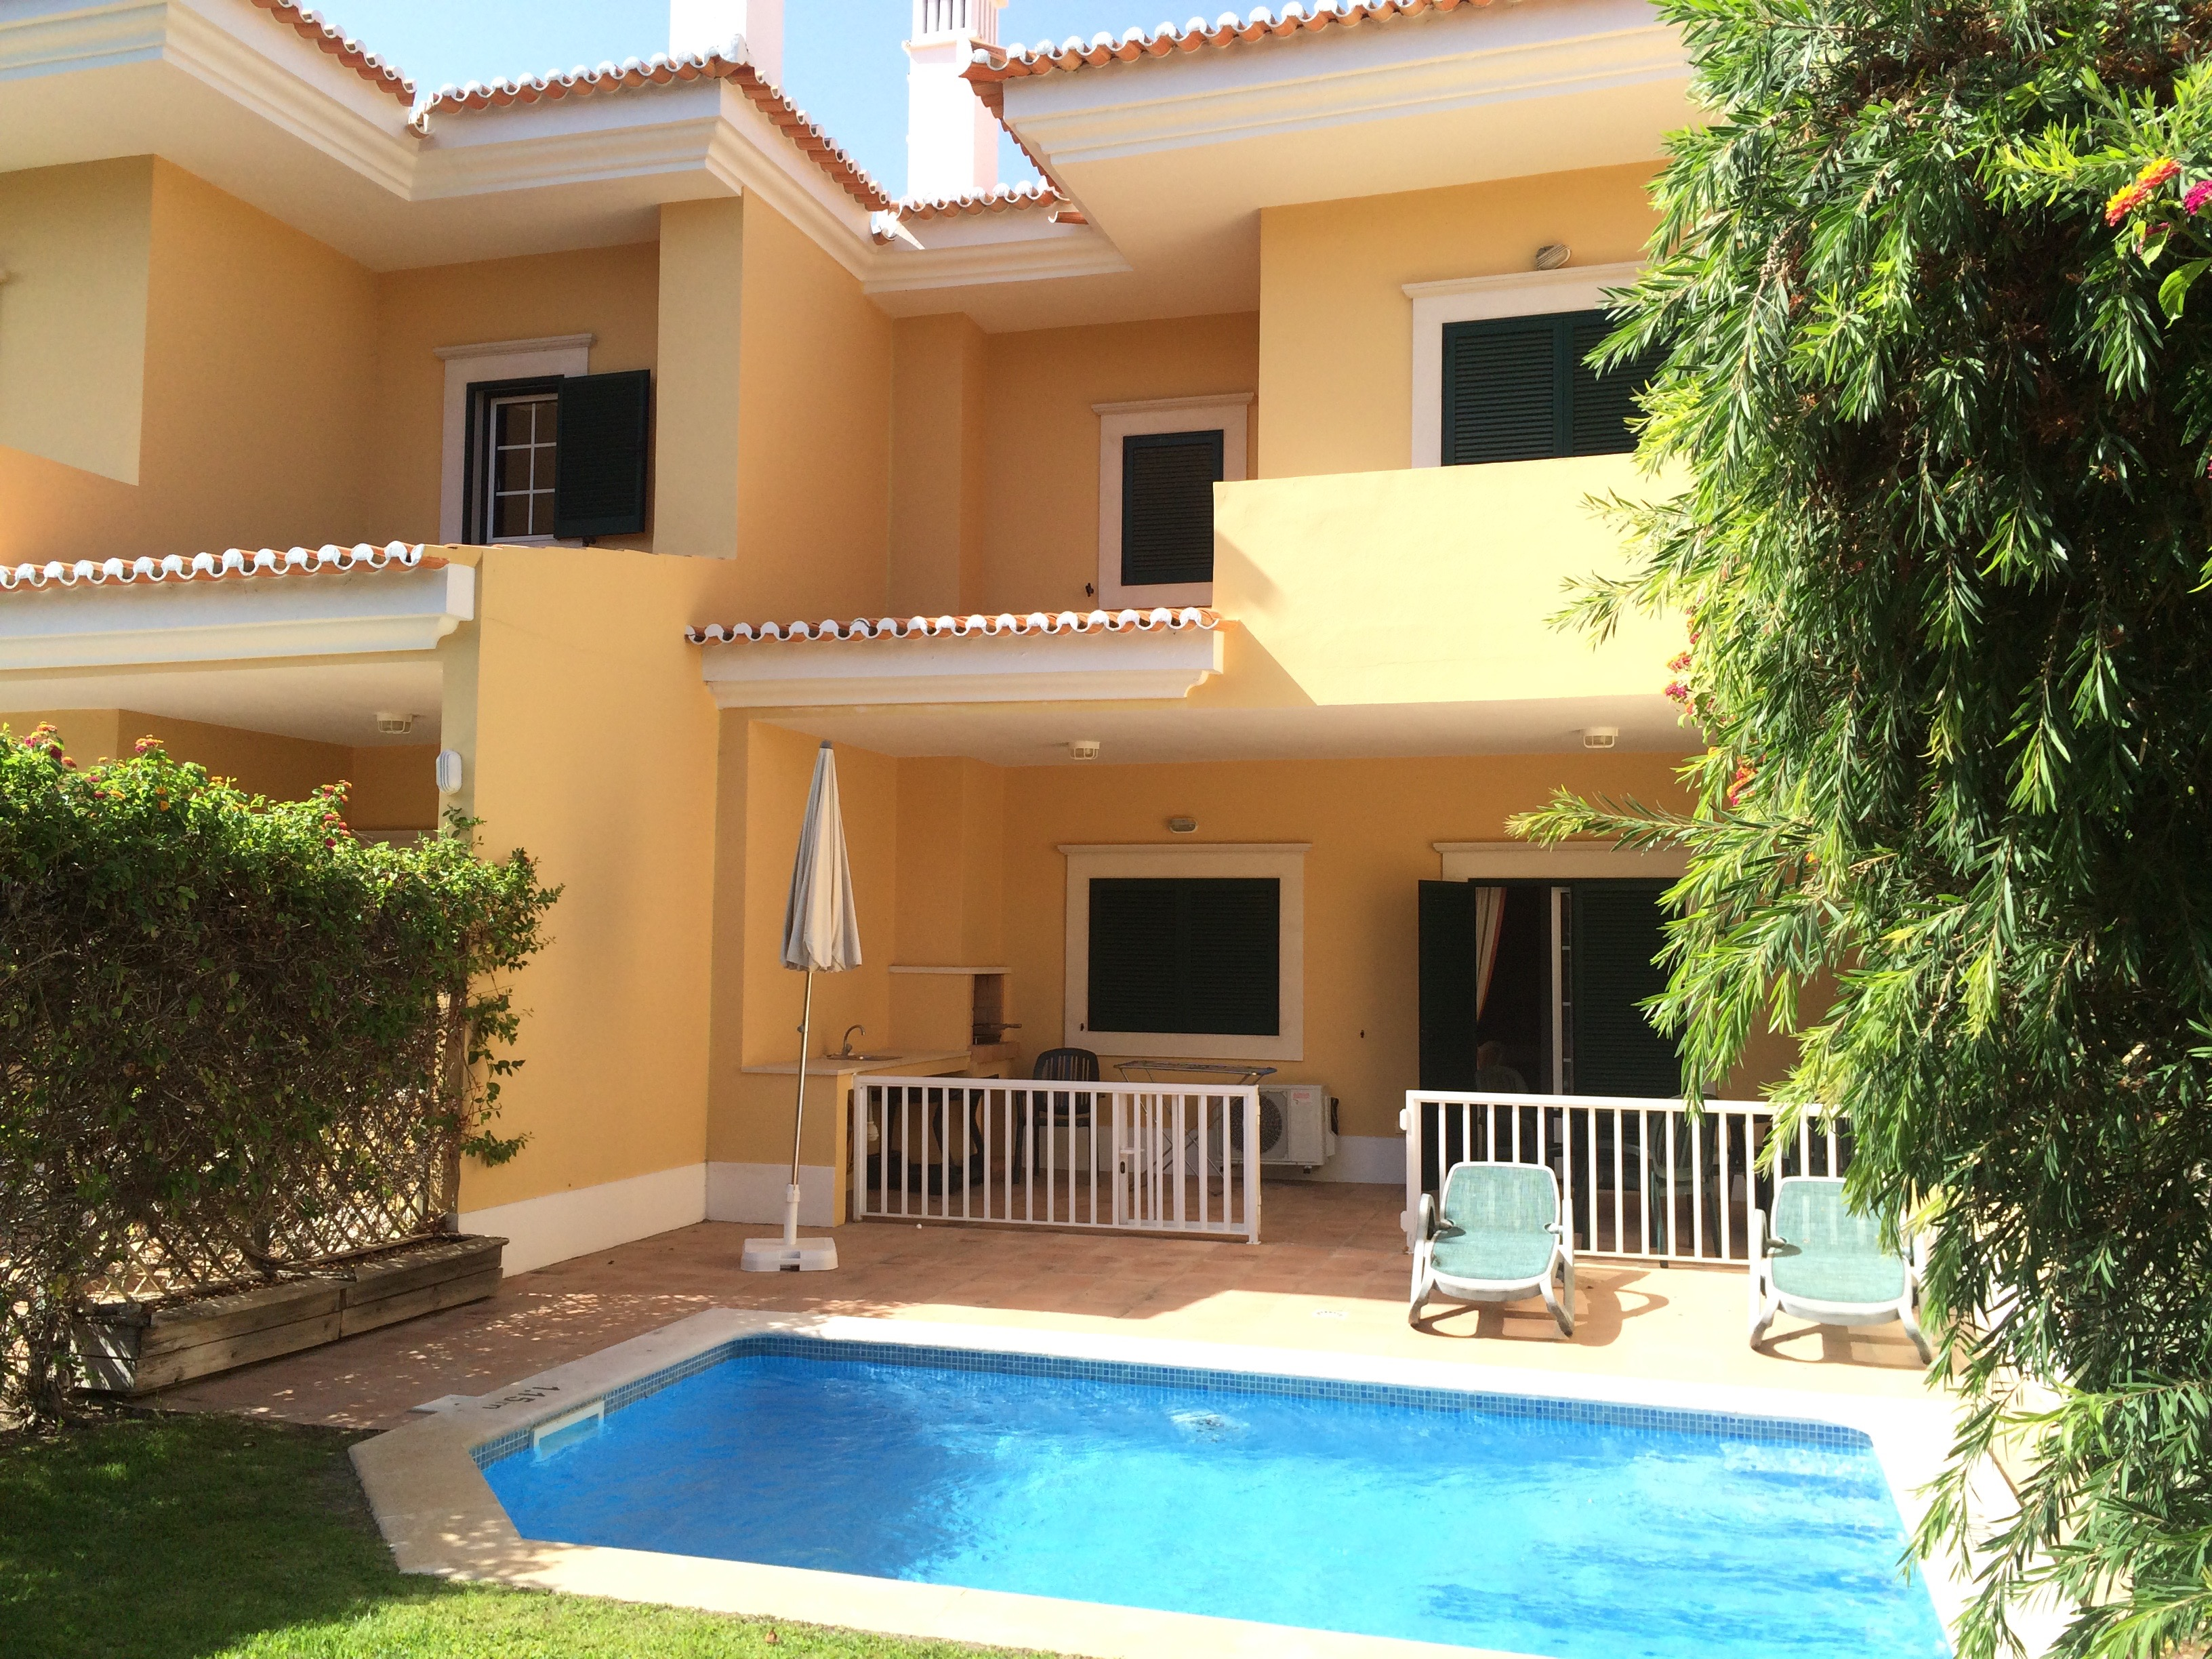 2 bedroom townhouse with private pool